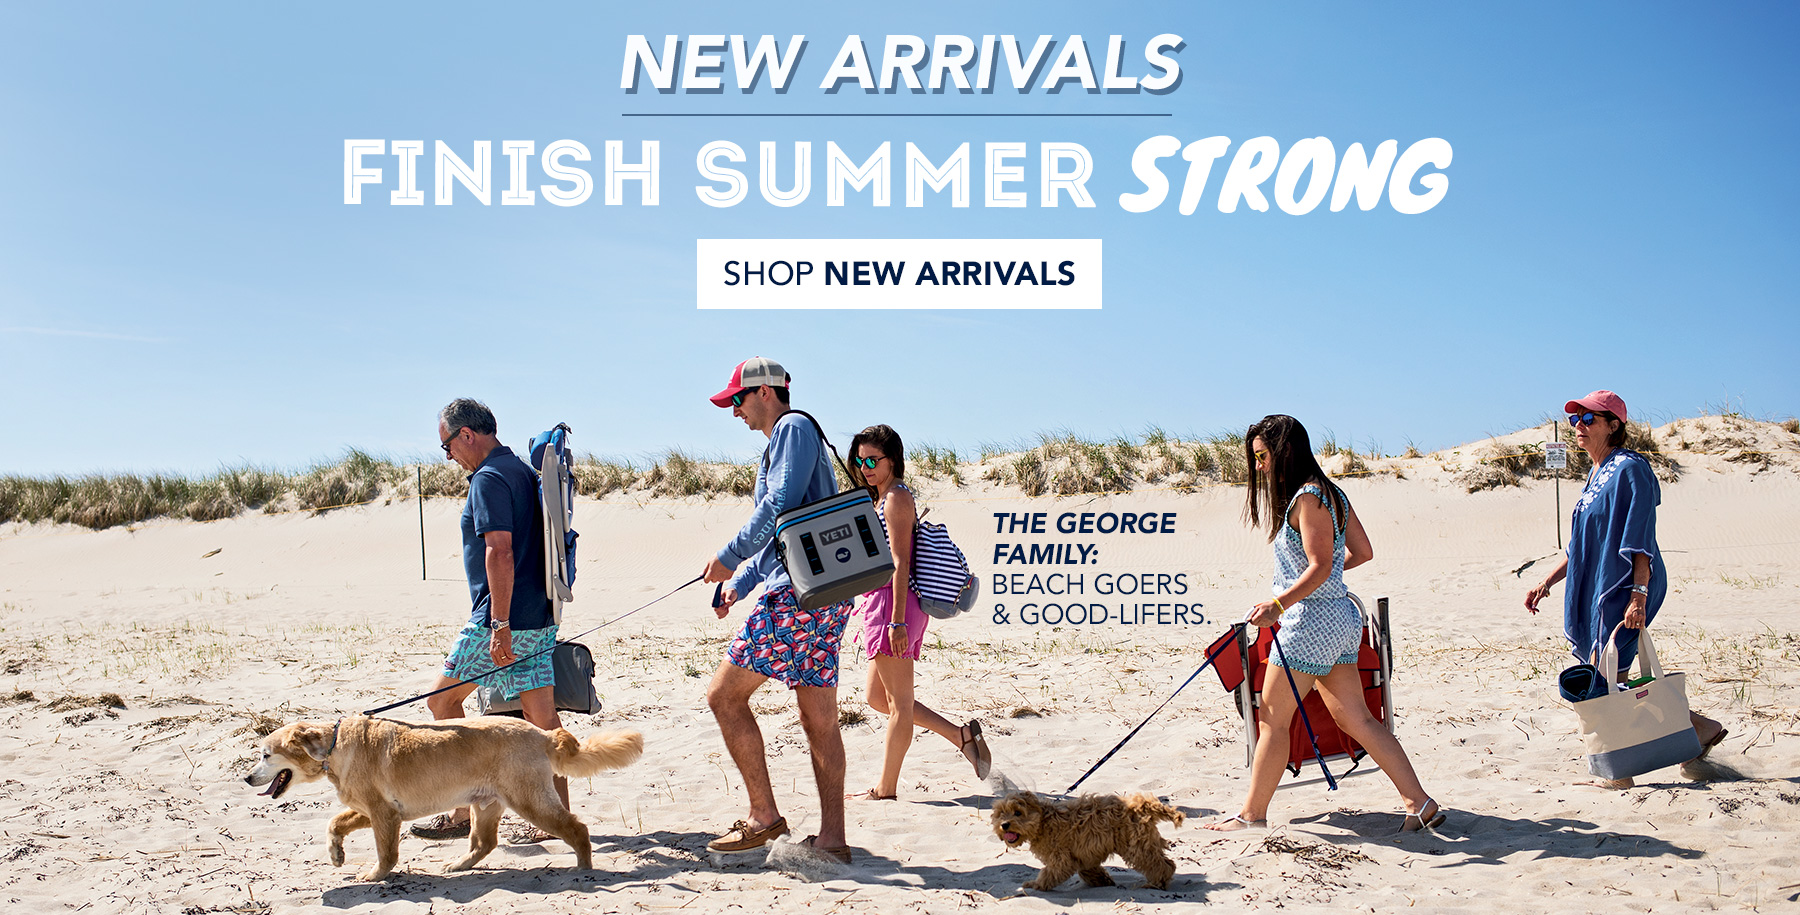 New Arrivals. Finish Summer Strong. The Georges Family: Beach Goers & Good-Lifers. Kelly & Caitlin are vineyard vines teammates... and sisters! Shop New Arrivals.